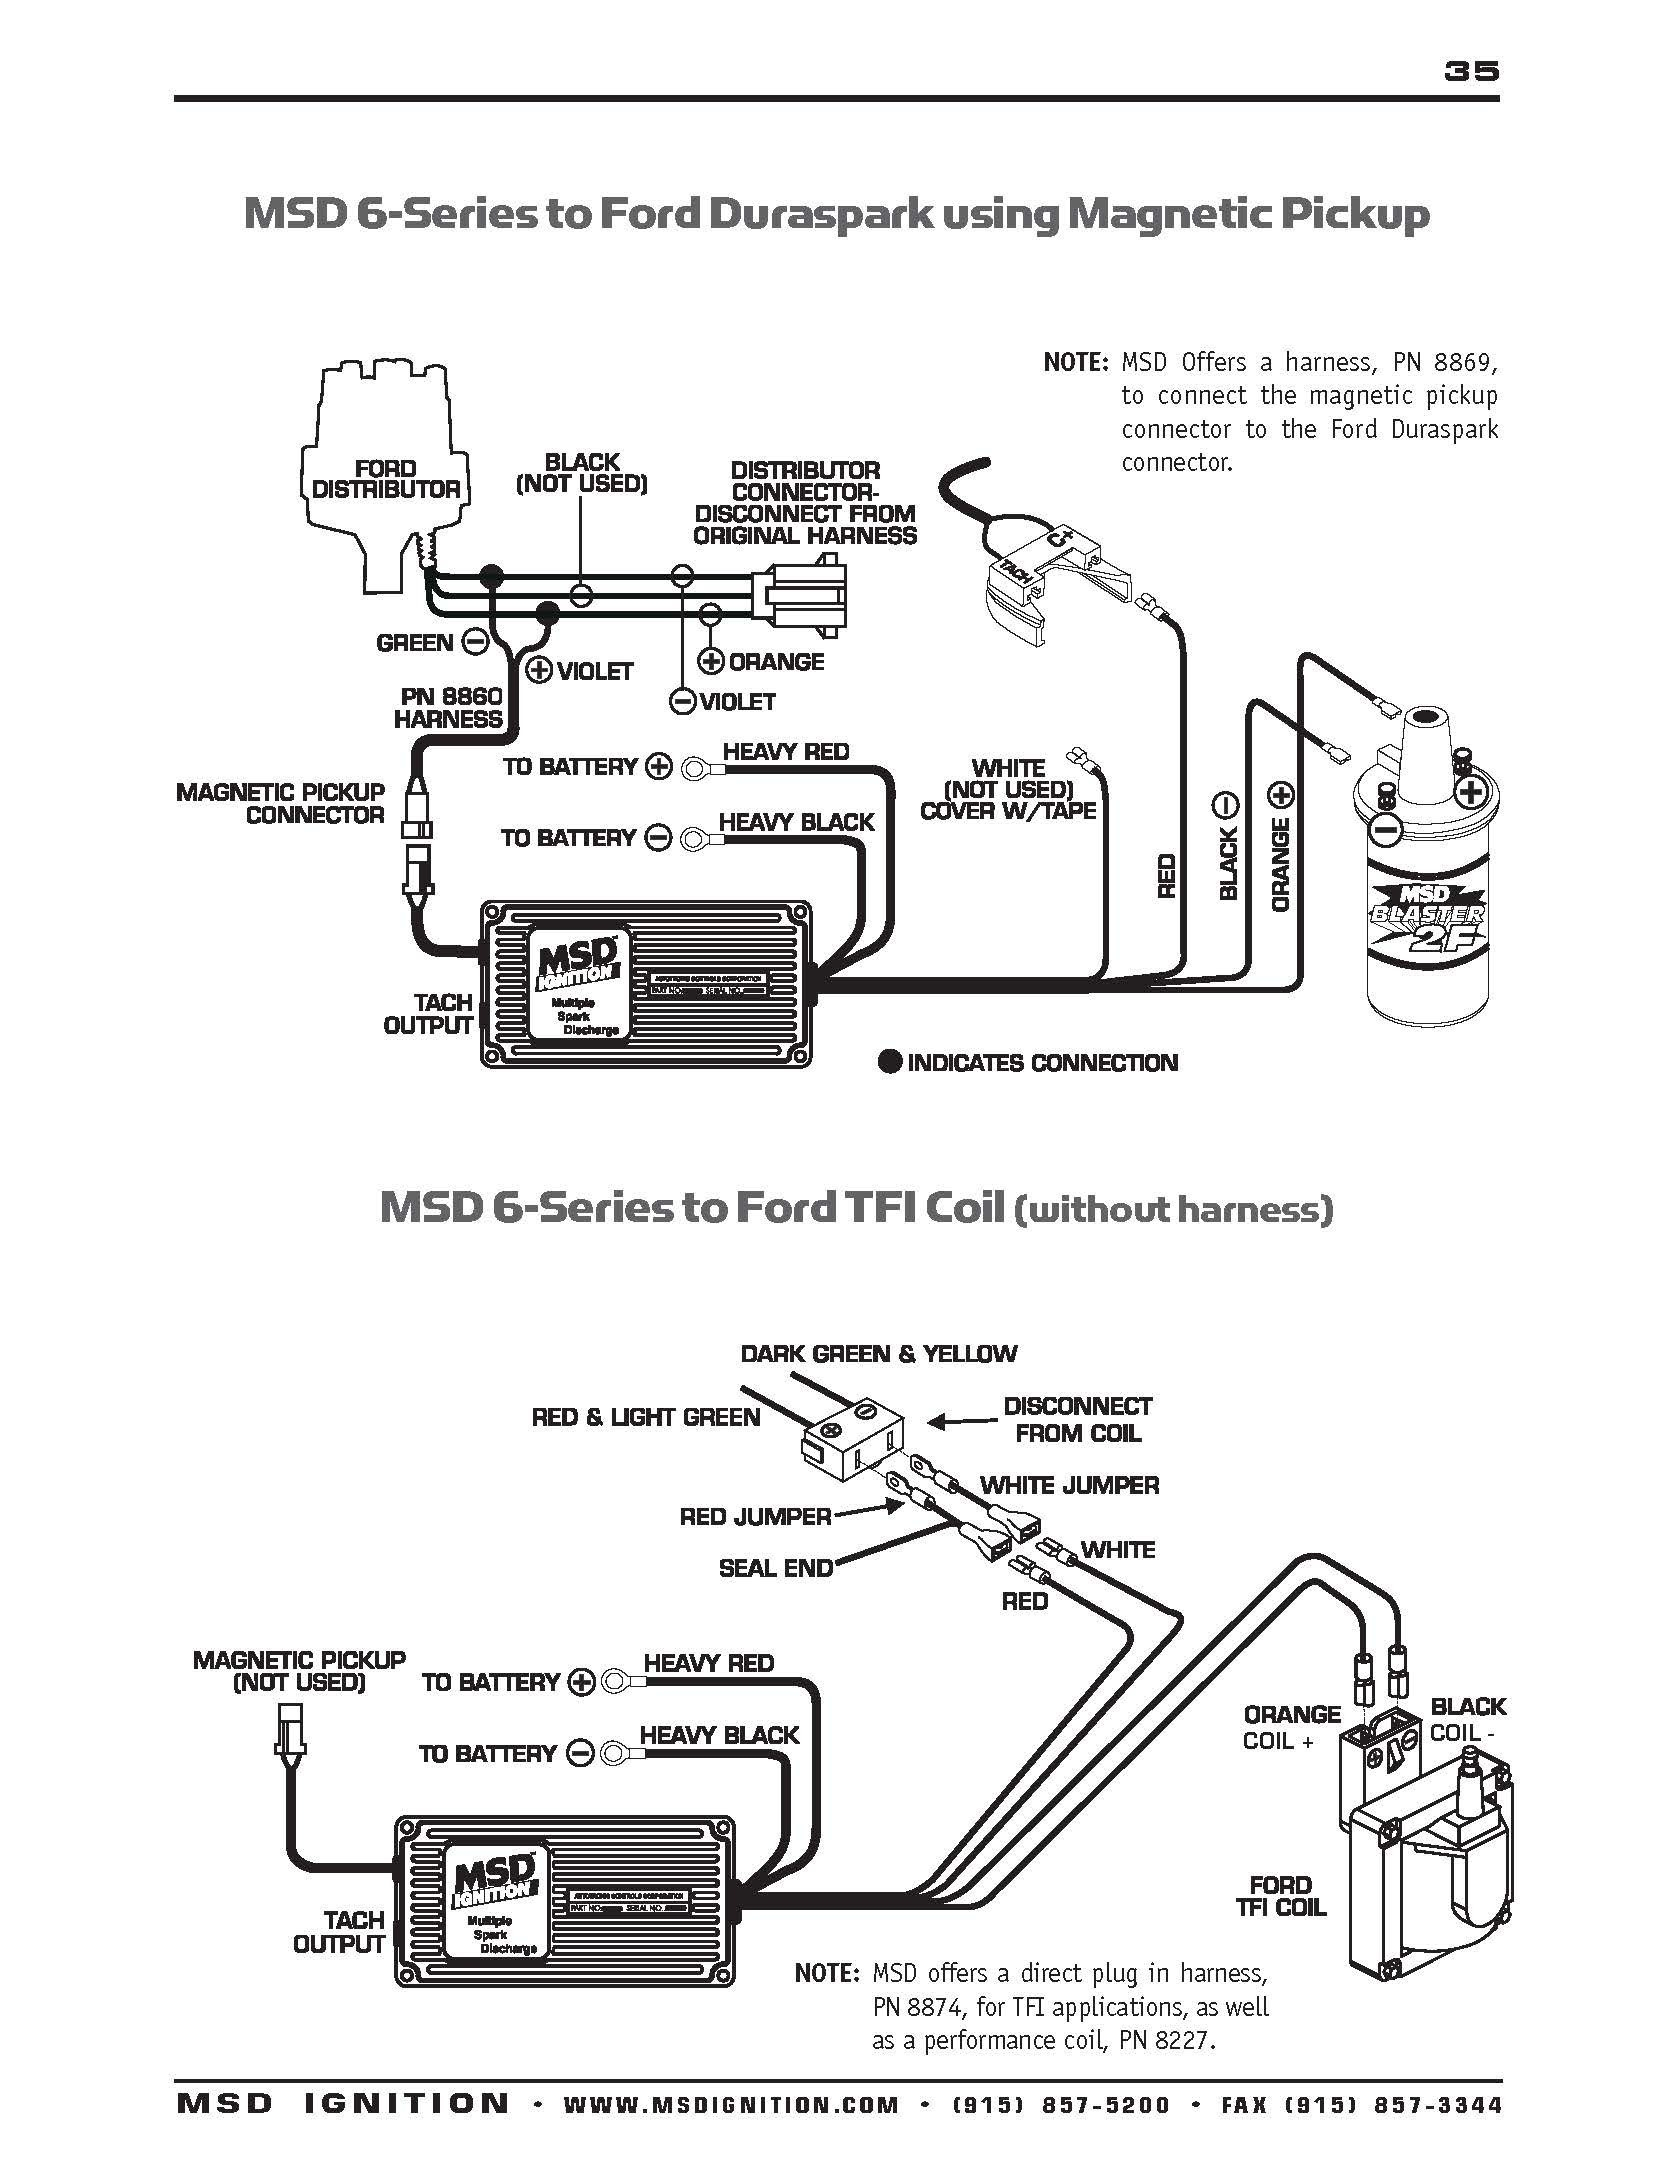 ford tfi ignition wiring diagram msd 6al 2 wiring diagram | free wiring diagram ford 460 ignition wiring diagram camper #14